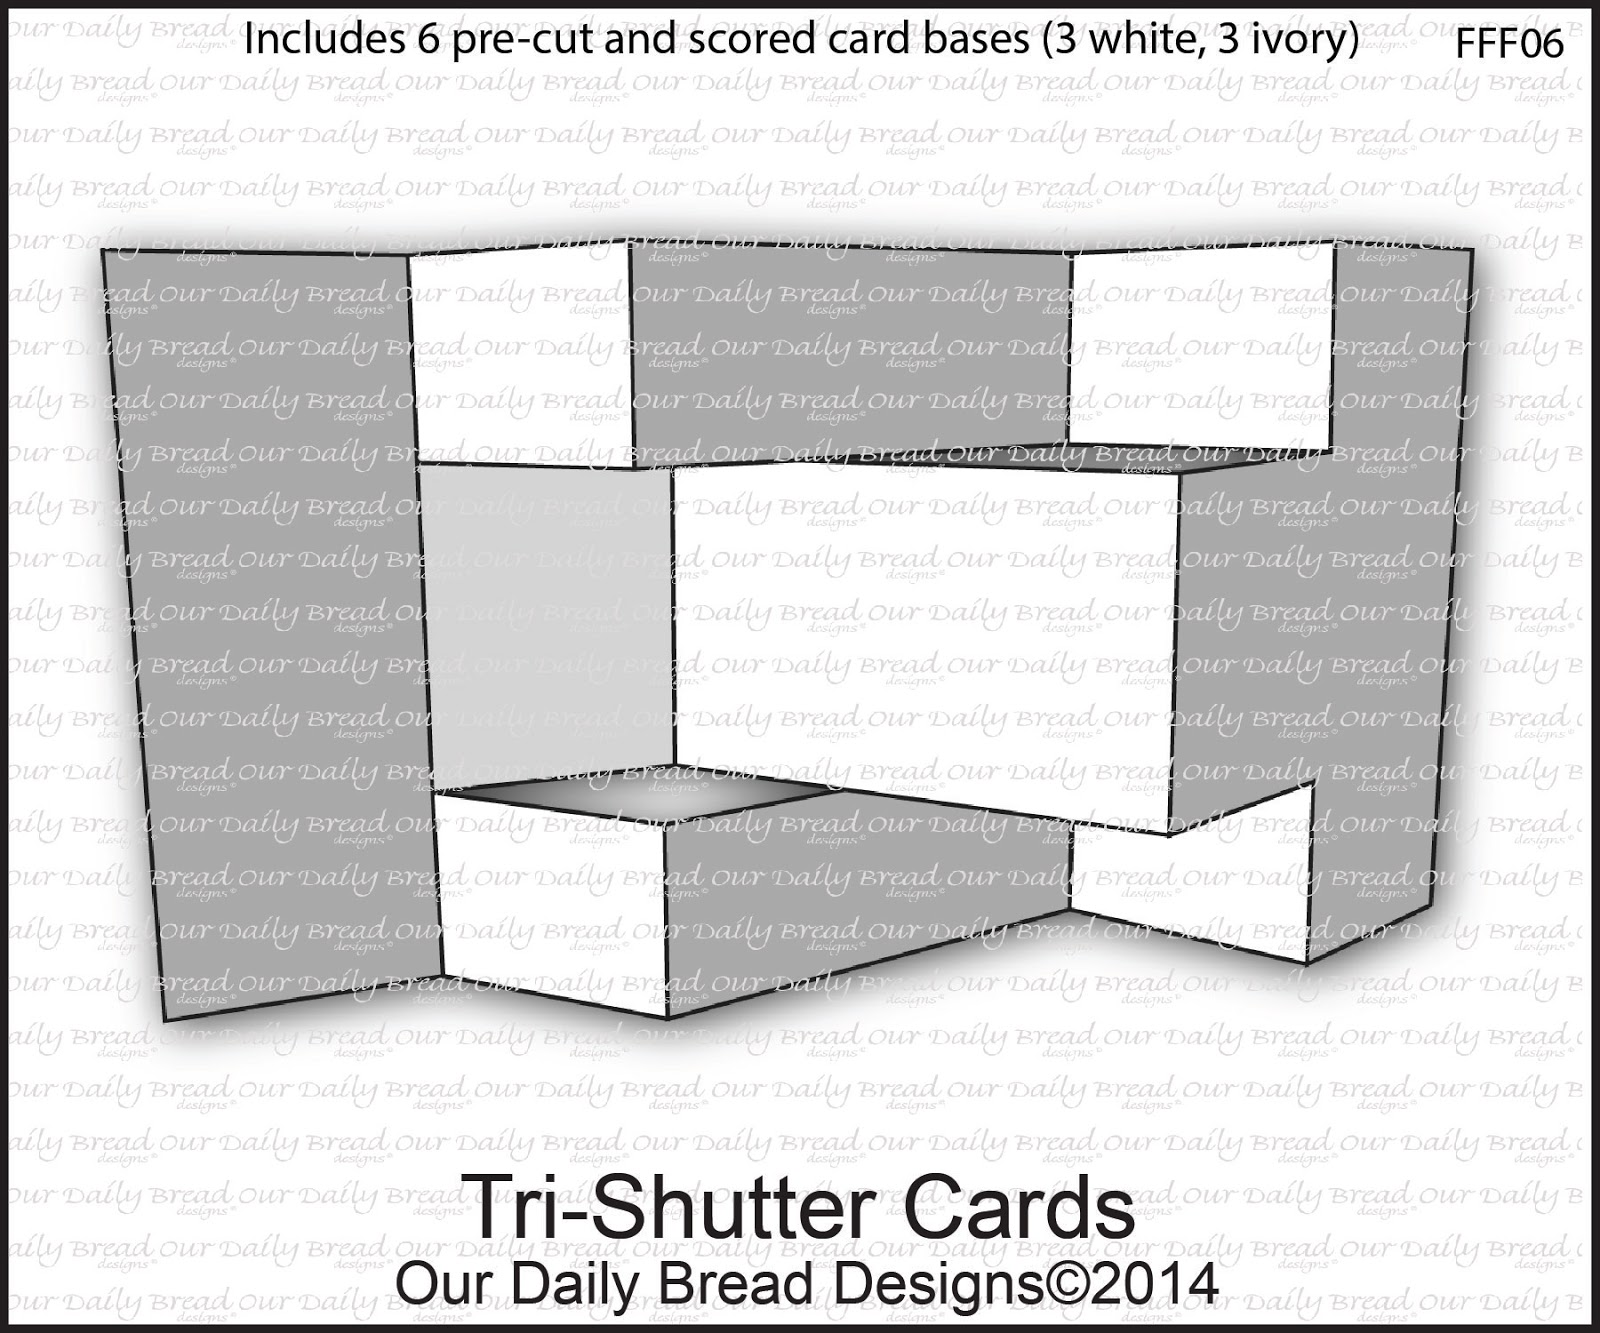 Our Daily Bread Designs Tri-Shutter Cards - Includes 6 pre-cut and scored card bases (3 White, 3 Ivory)